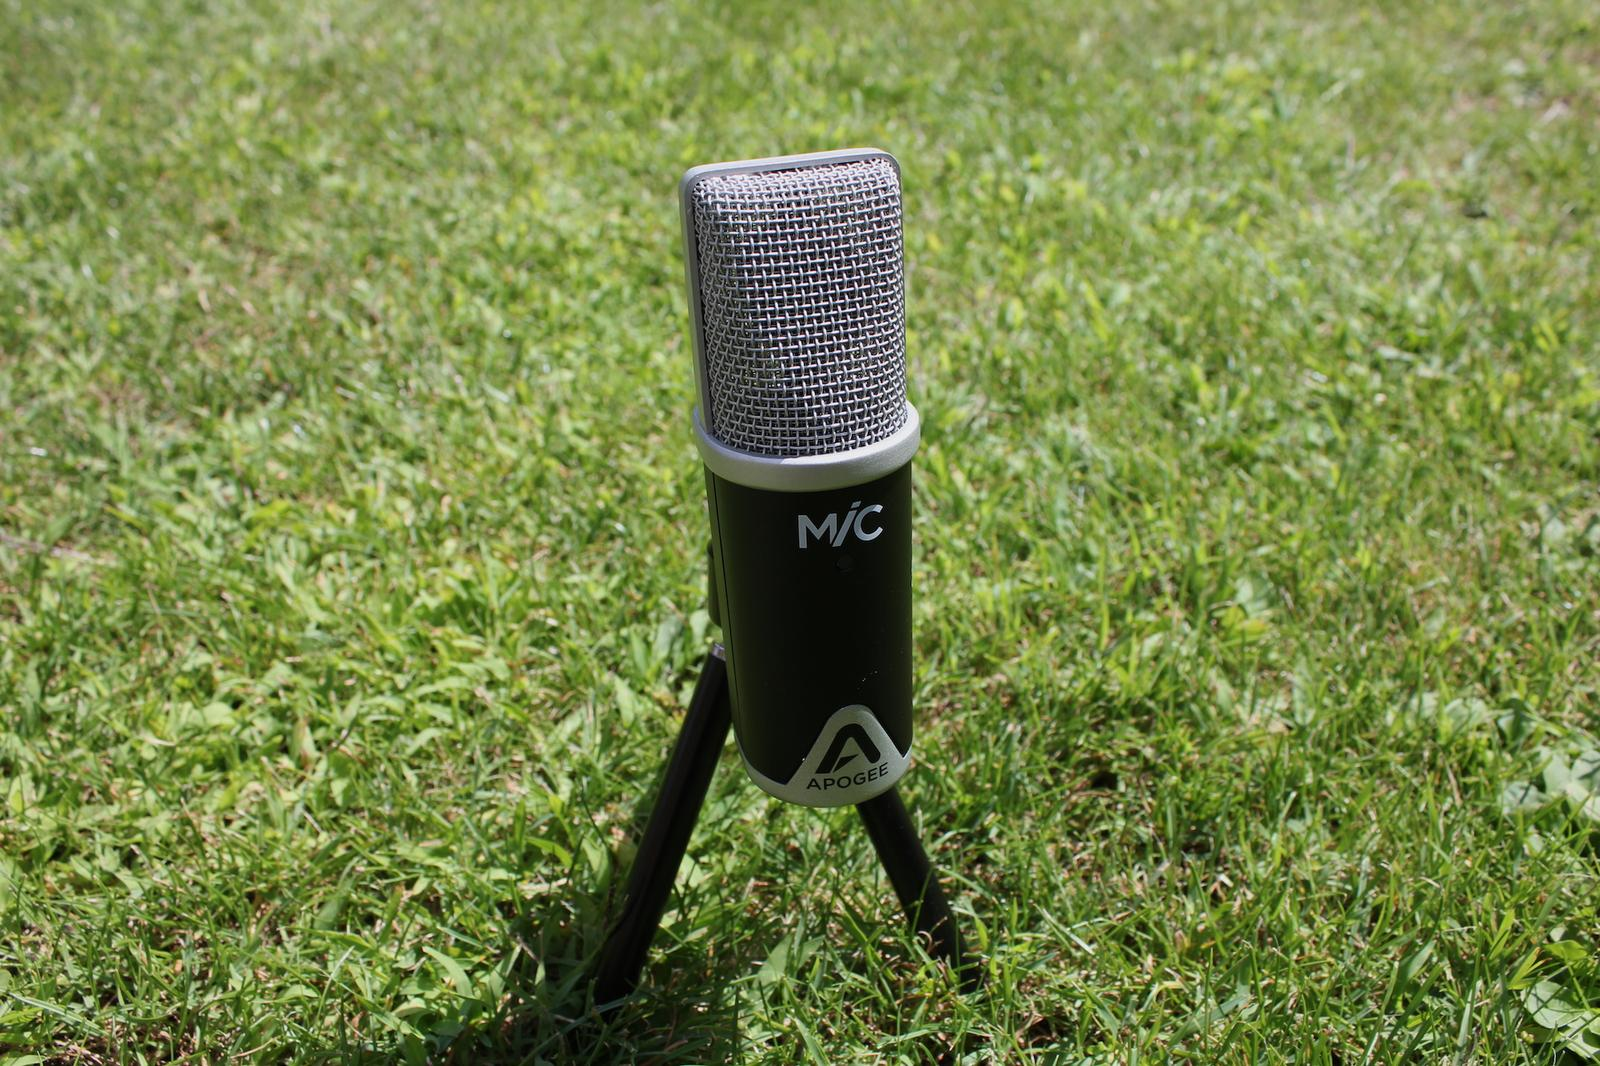 Apogee Mic Review 2